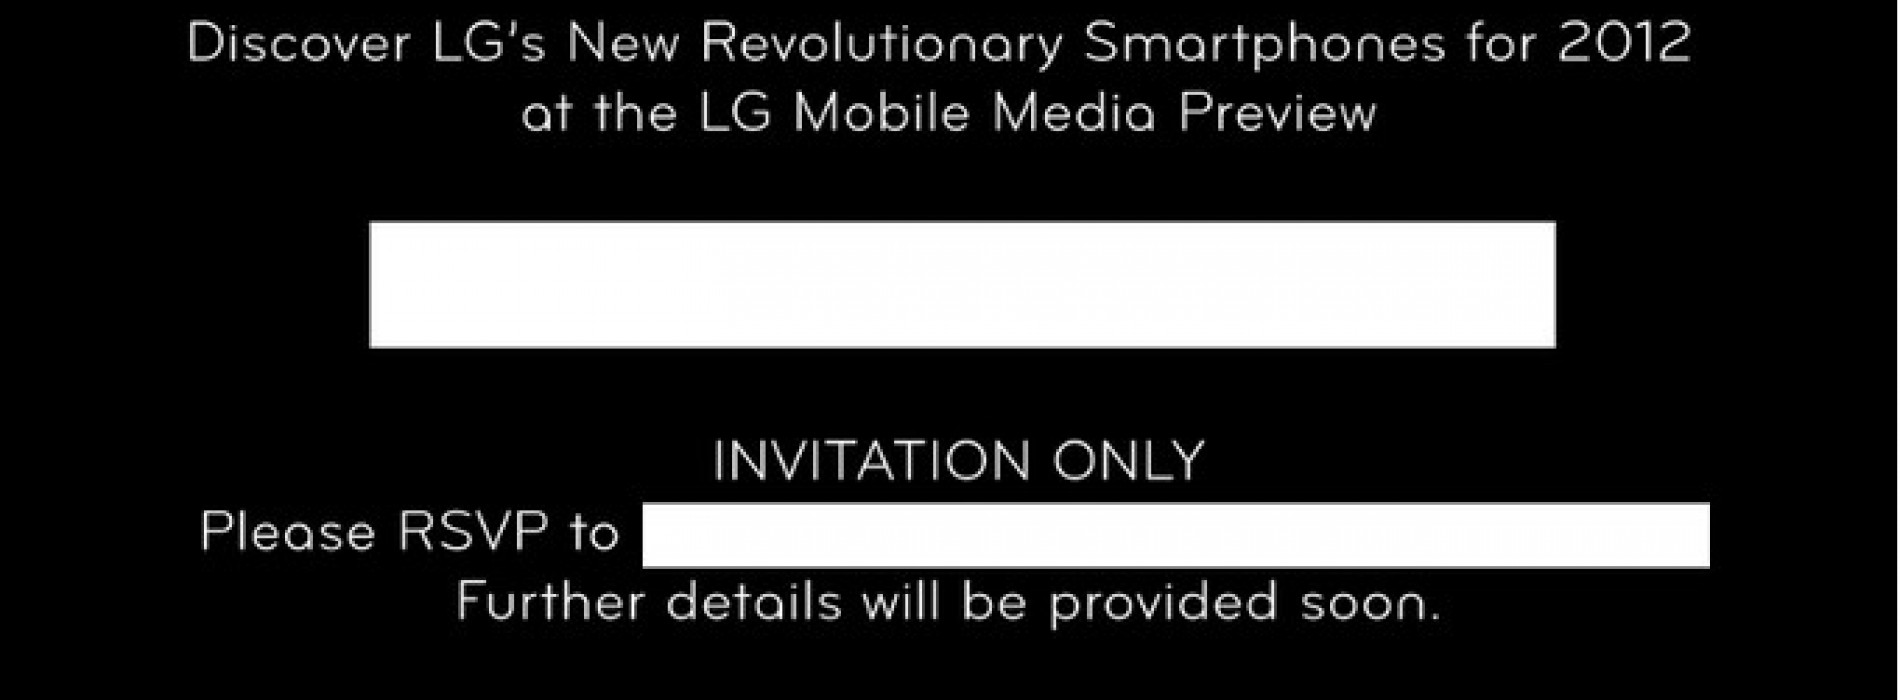 MWC 2012 Media Preview: LG Revolutionary Smartphones